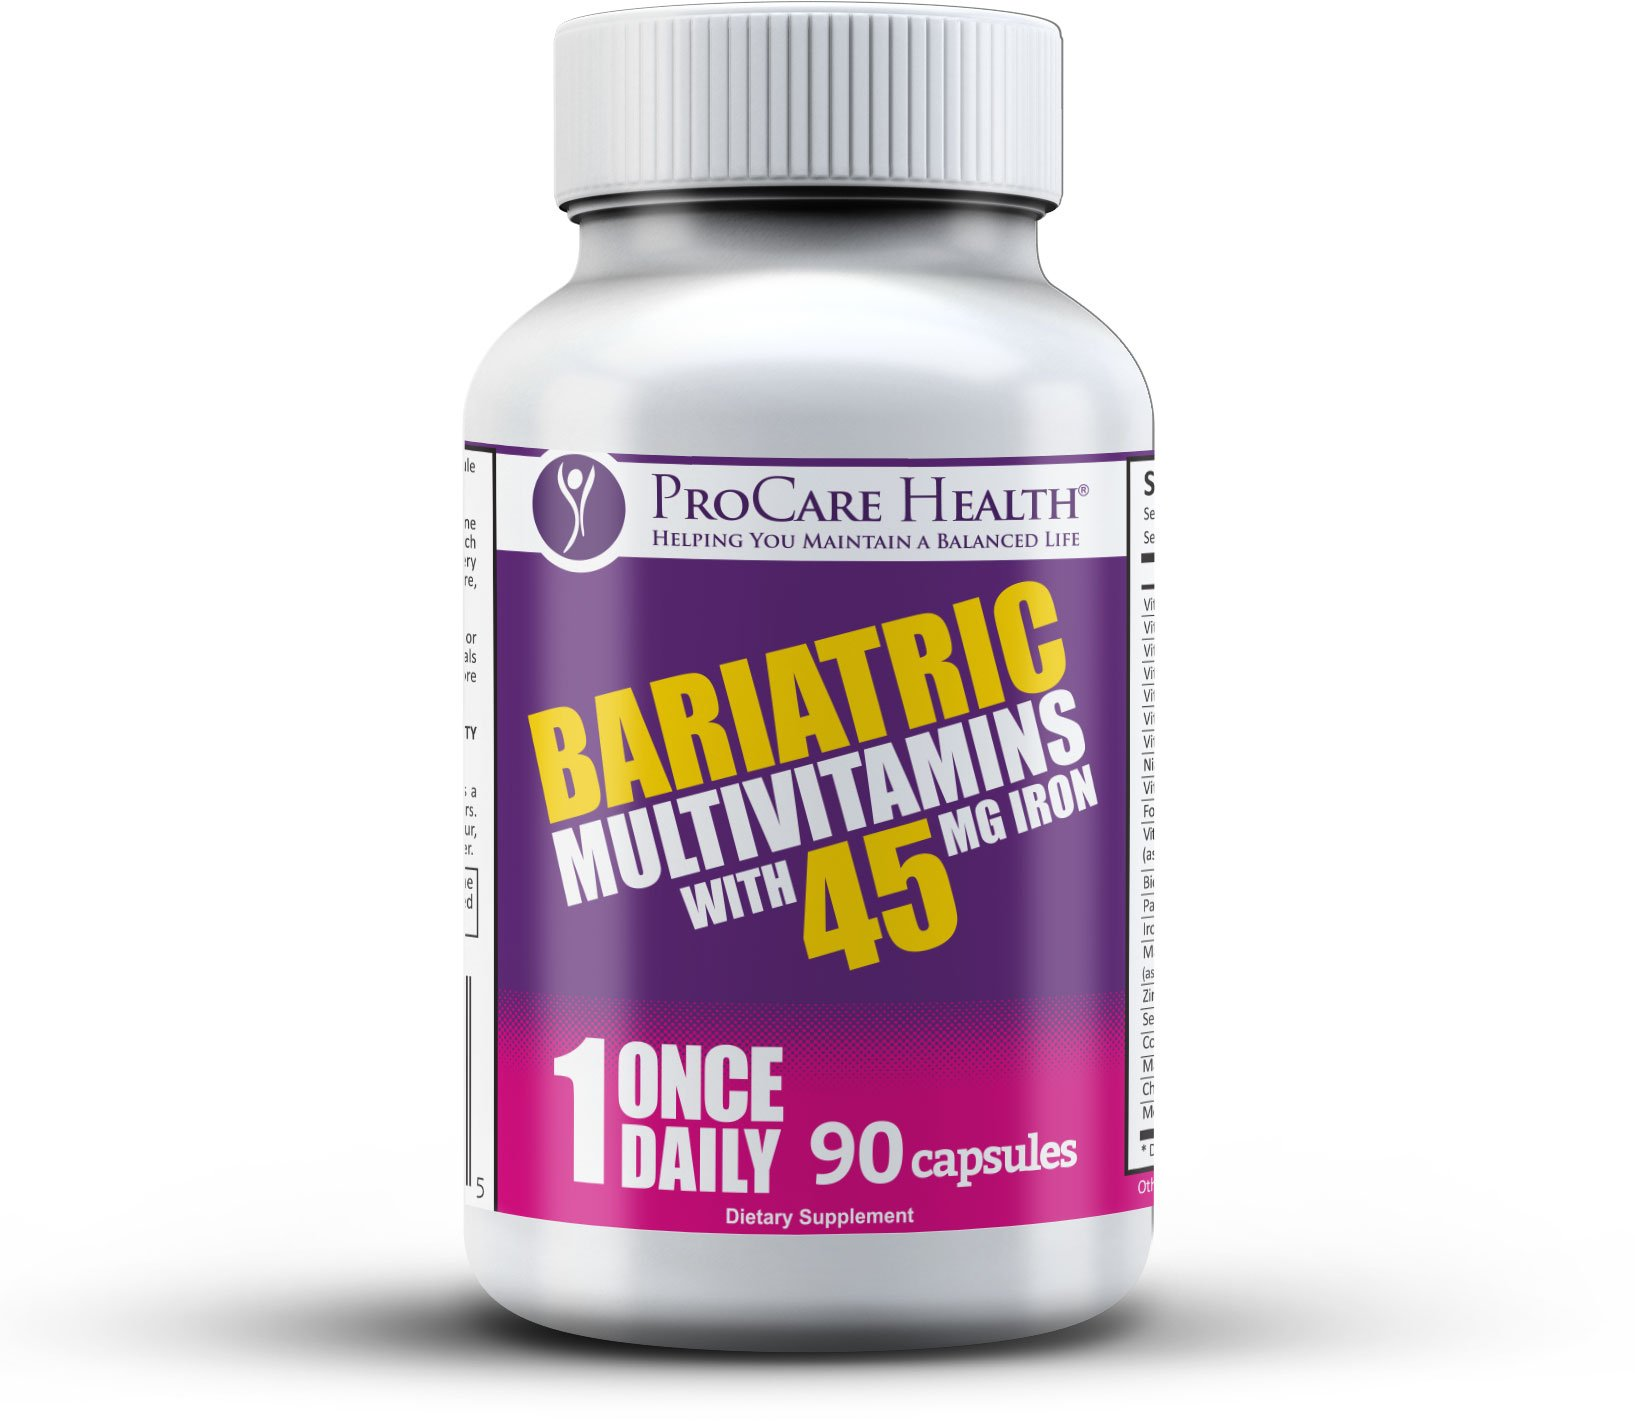 Bariatric Once-A-Day Multivitamin 90 Ct Capsule-45mg Iron Made for Gastric Bypass Sleeve WLS Surgery by ProCare Health